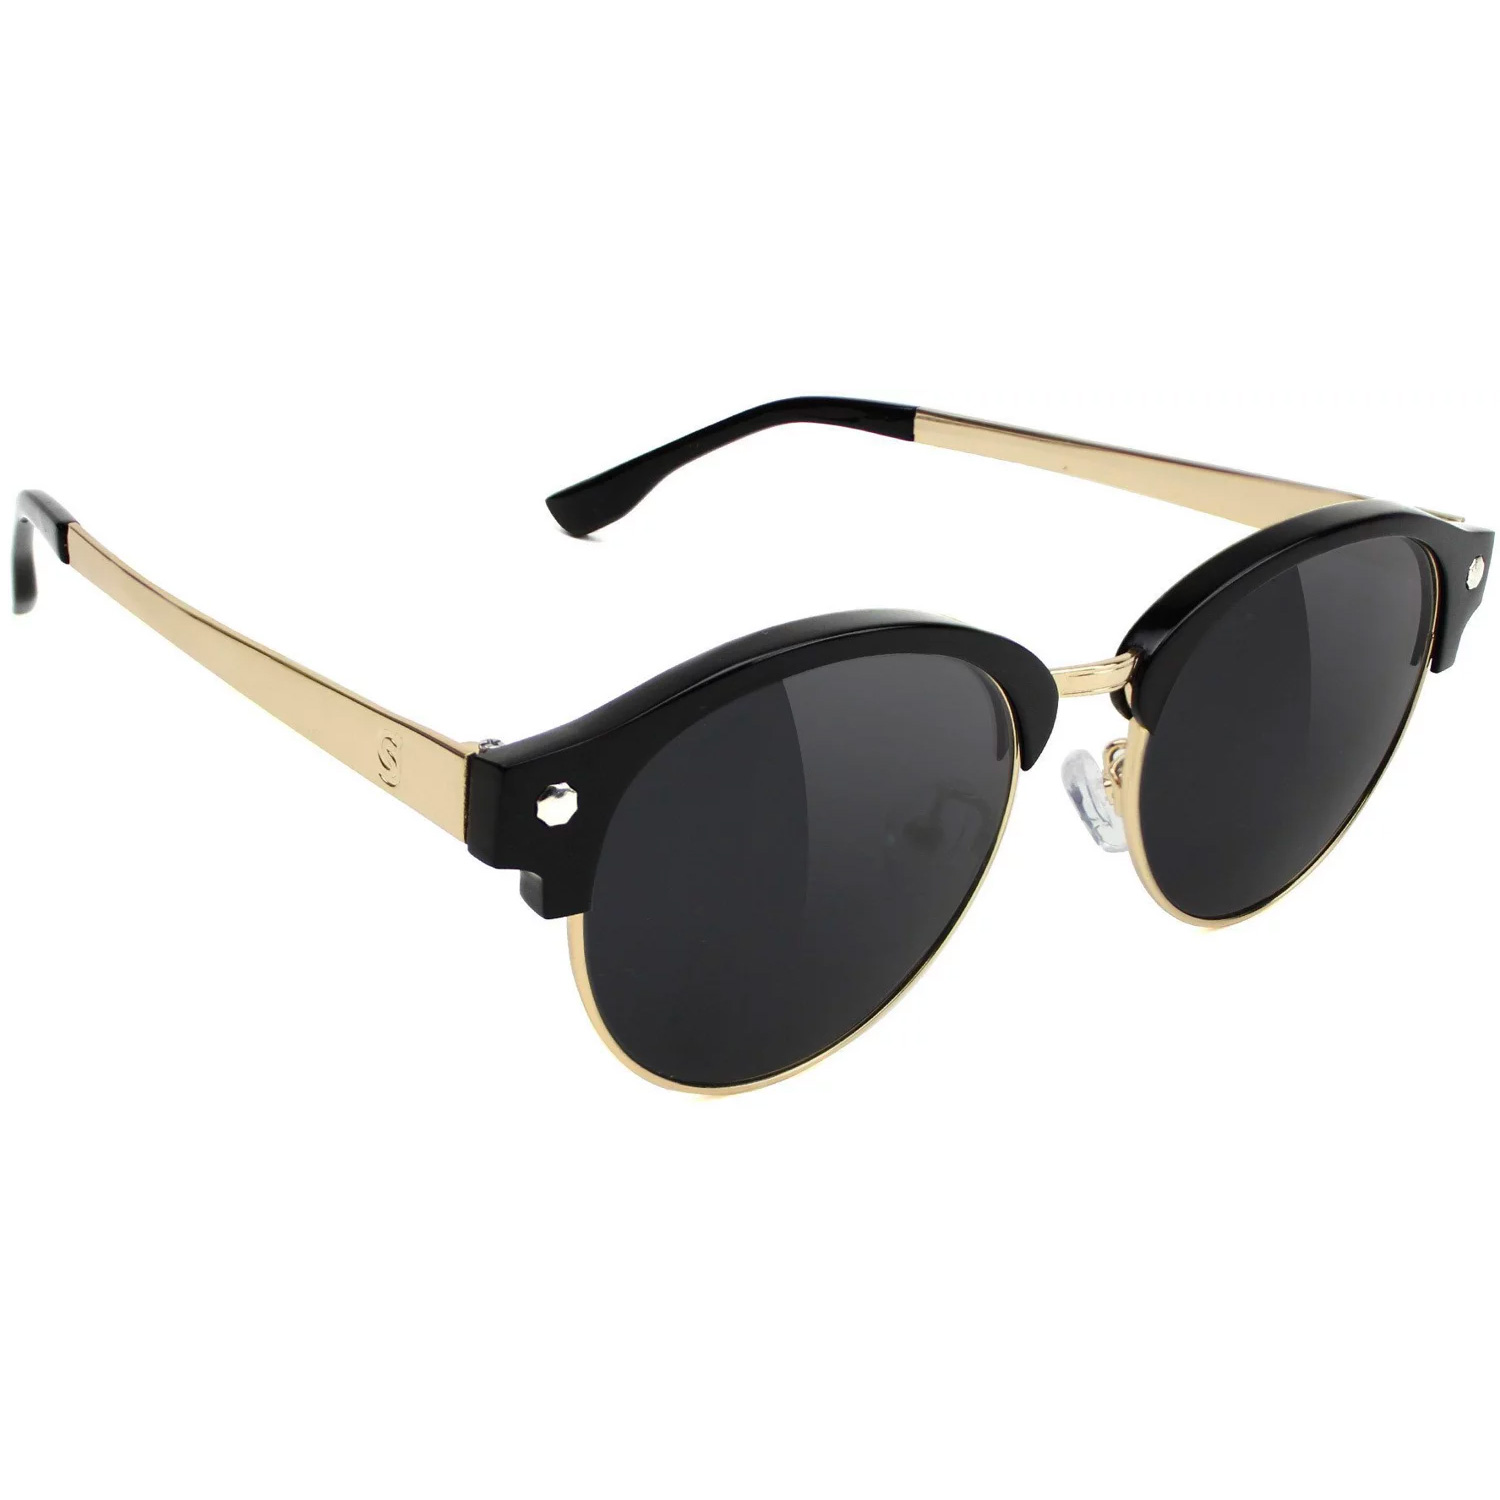 GLSY SUNNIES PROD BLK/GLD POL - Click to enlarge